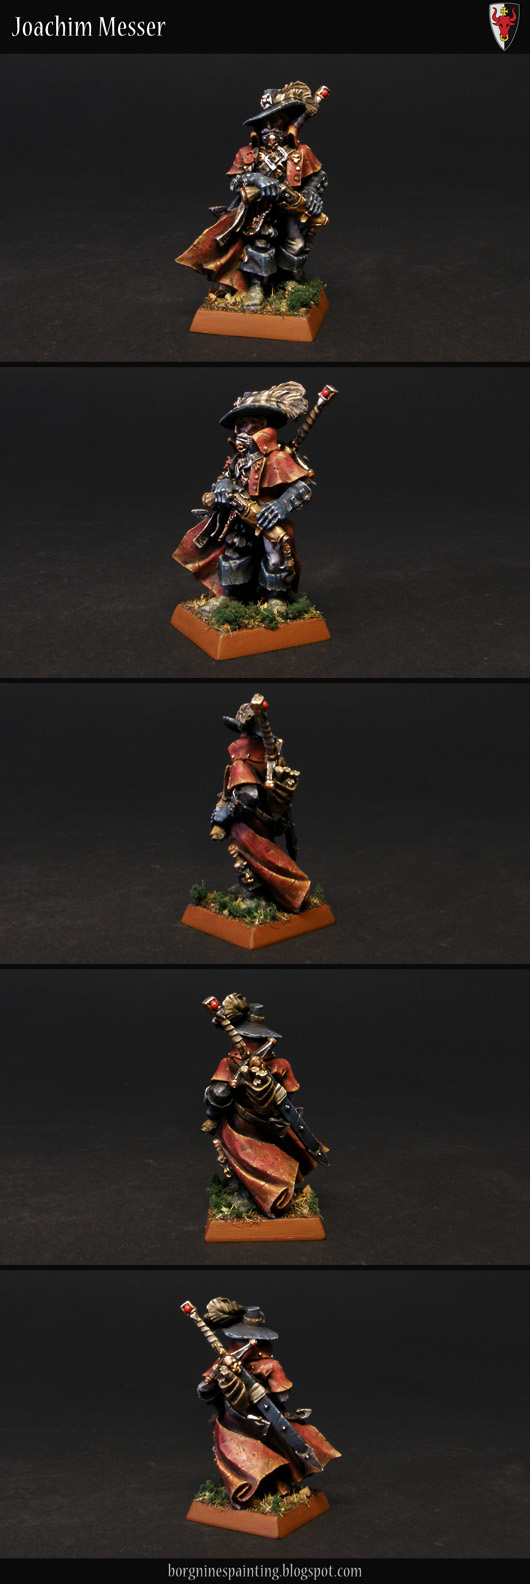 An Empire Witch Hunter miniature painted in Ostland colors, wearing a dark red coat and a two-handed sword on his back.